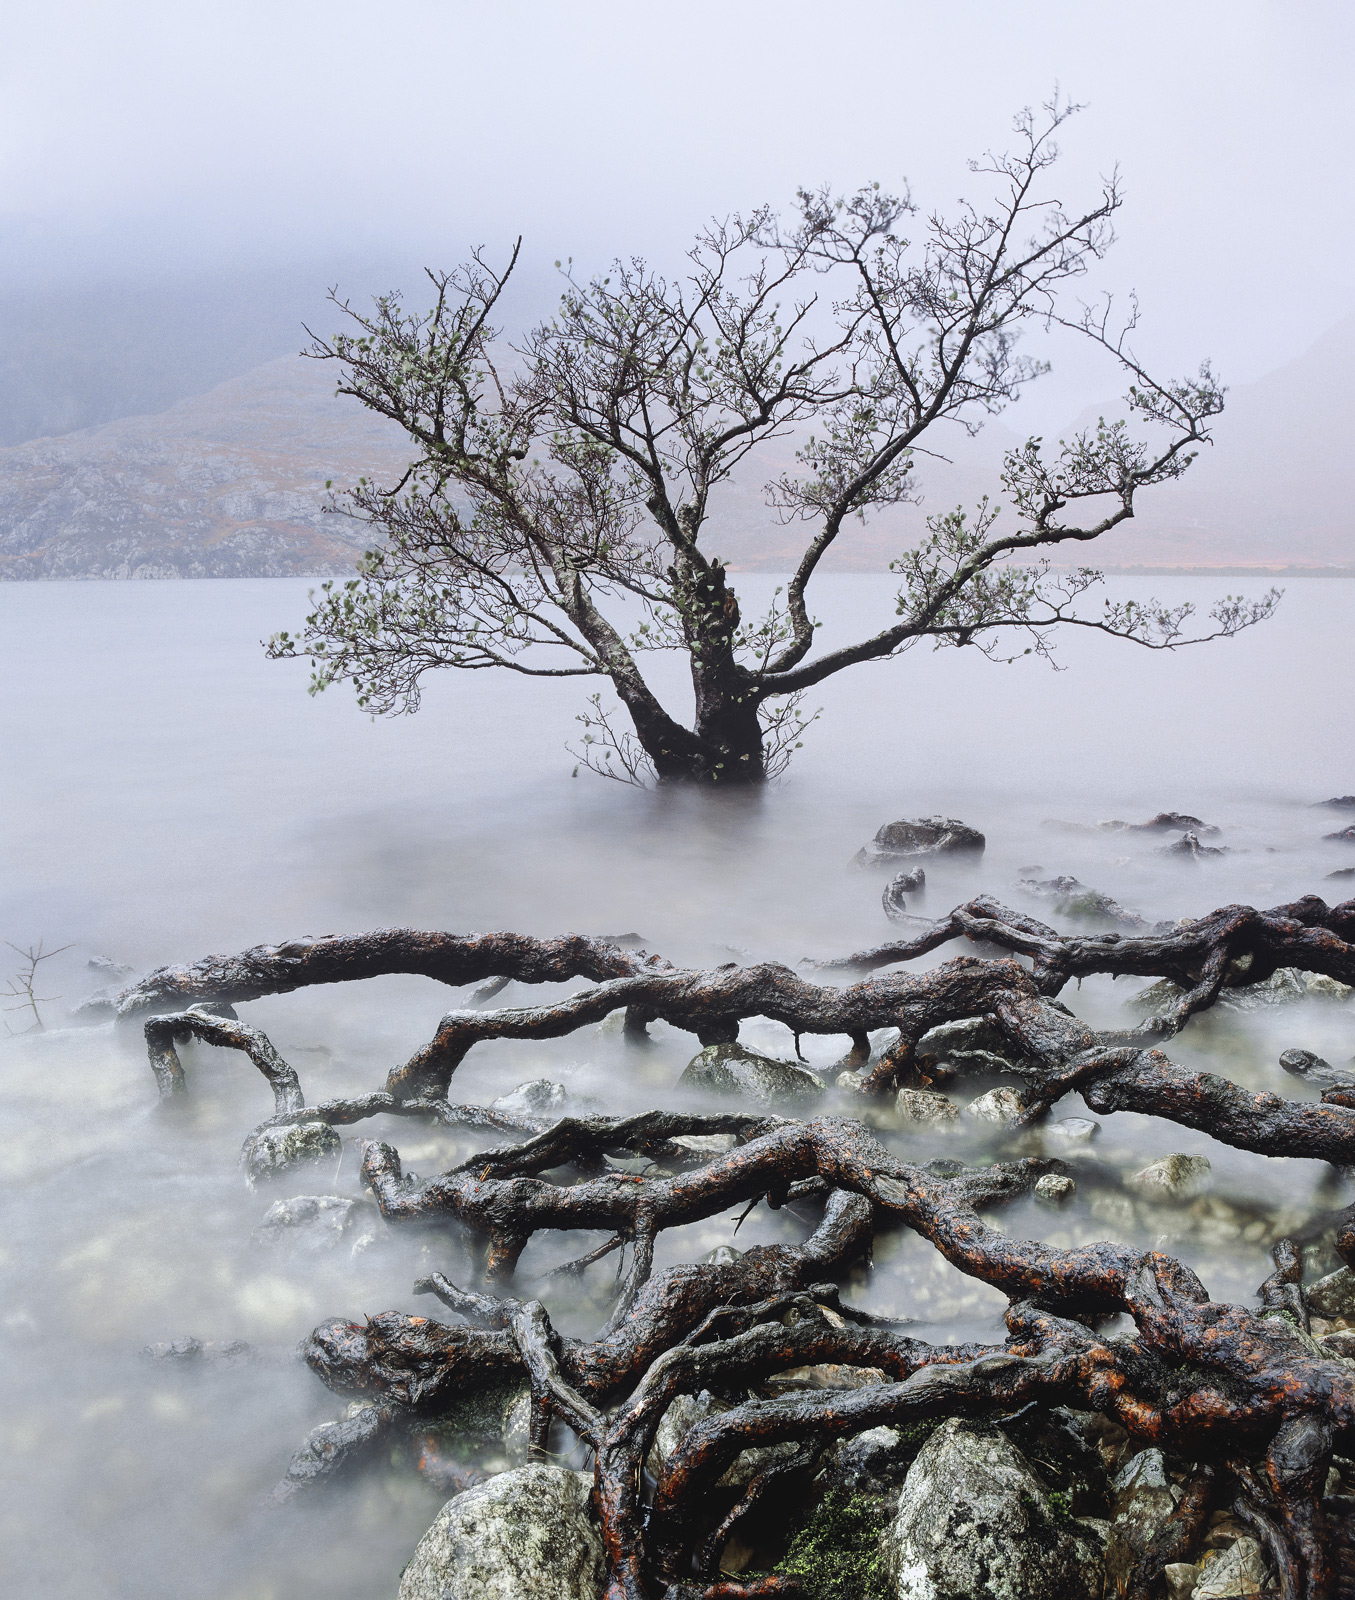 At the edge of Loch Maree on a pretty dreadful autumn afternoon I saw this water logged tree and the roots of another exposed...